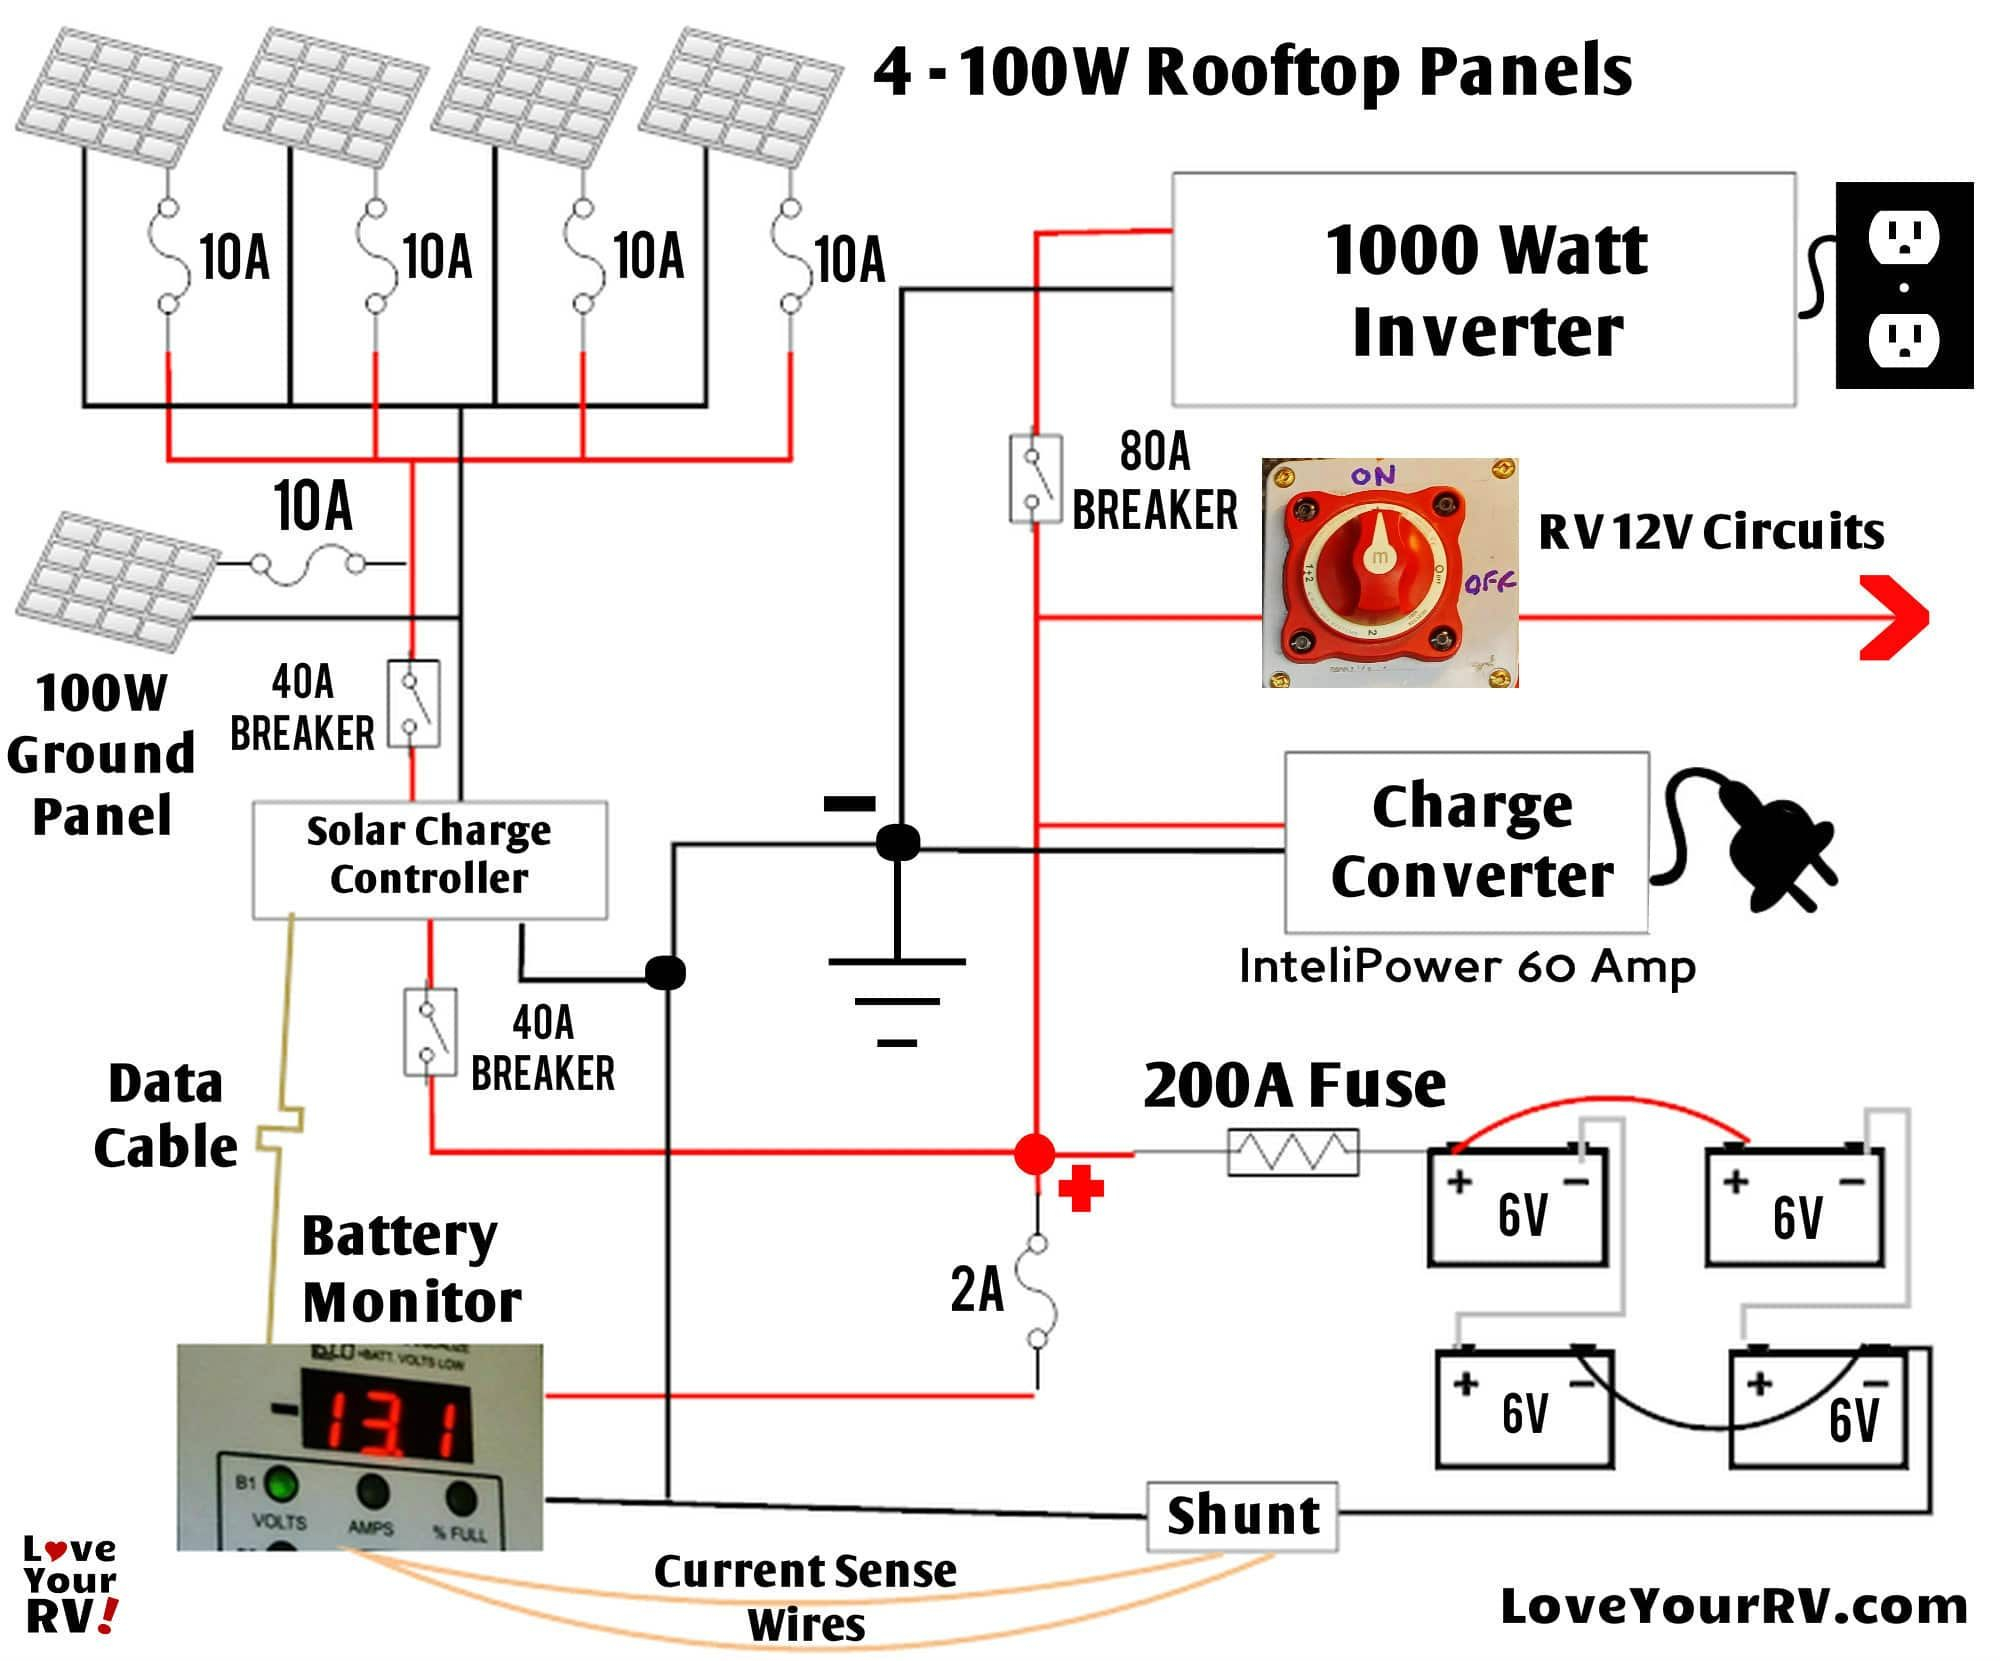 rv solar panel installation wiring diagram Download-Detailed Look at Our DIY RV Boondocking Power System 4-m